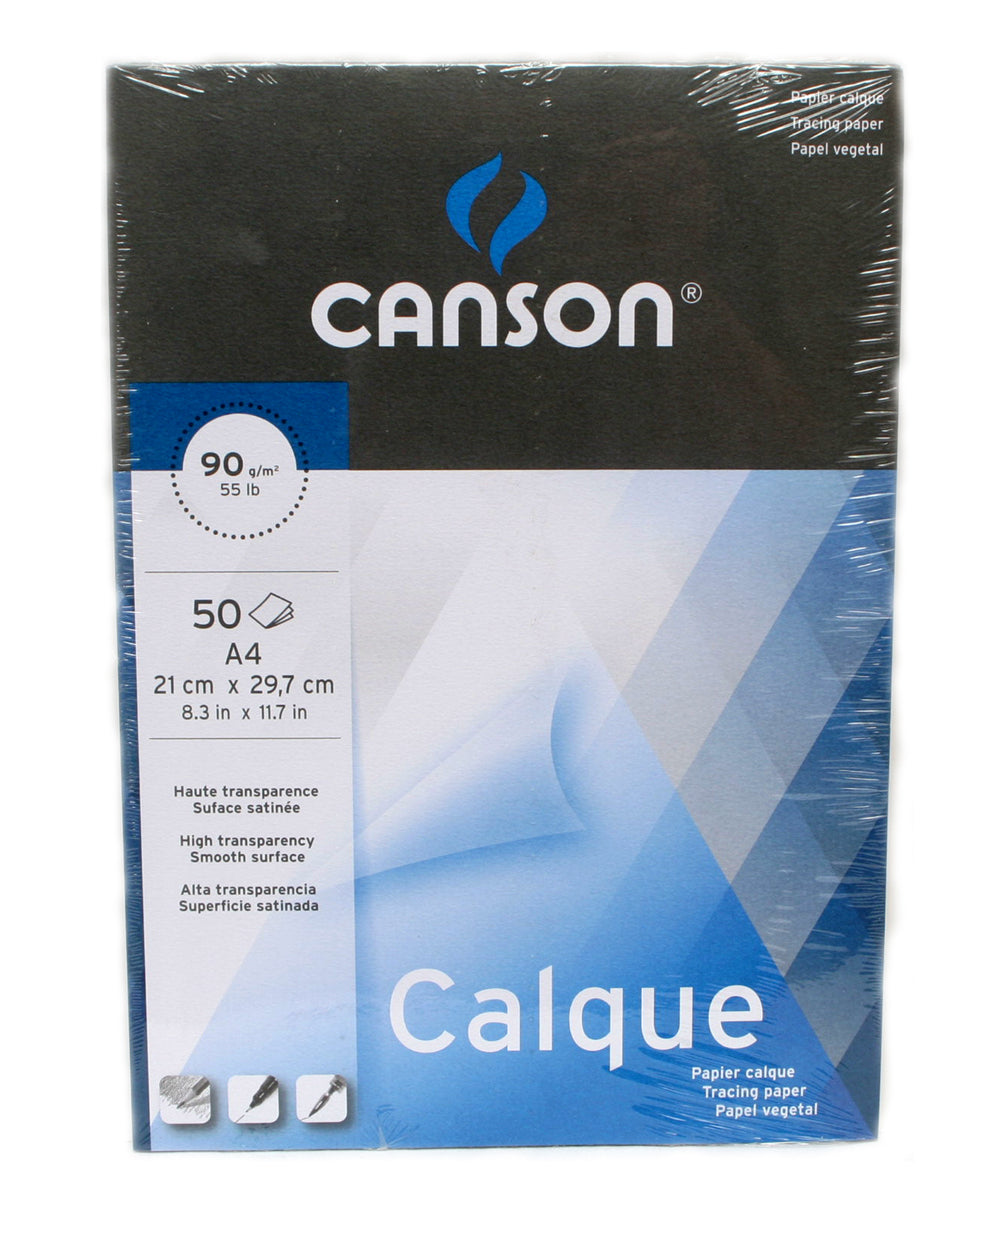 Canson Calque Satin 90gsm Tracing Paper Pad